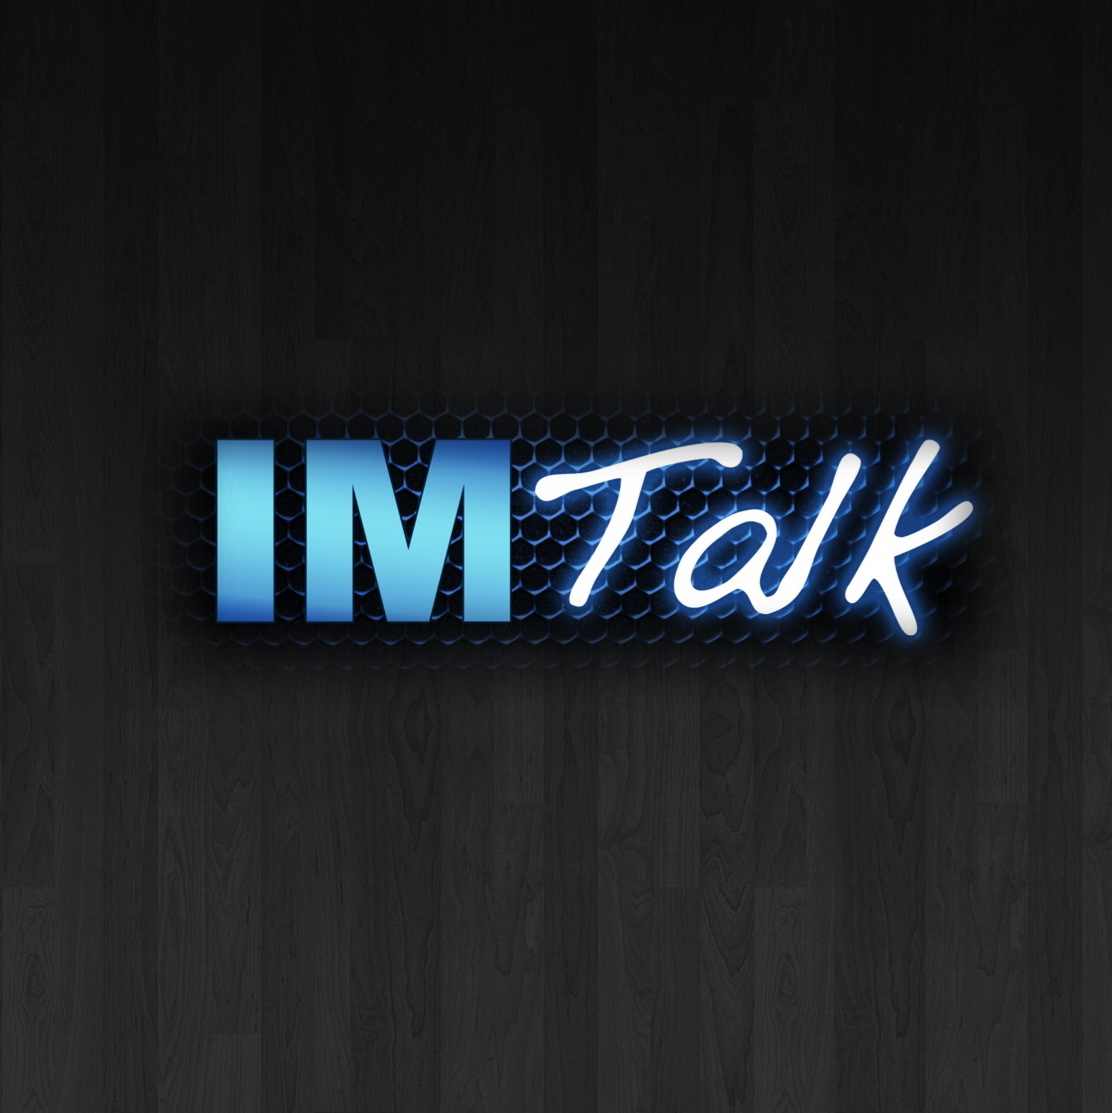 IMTalk Episode 731 - Michael 'Dreamcatcher' Smith show art